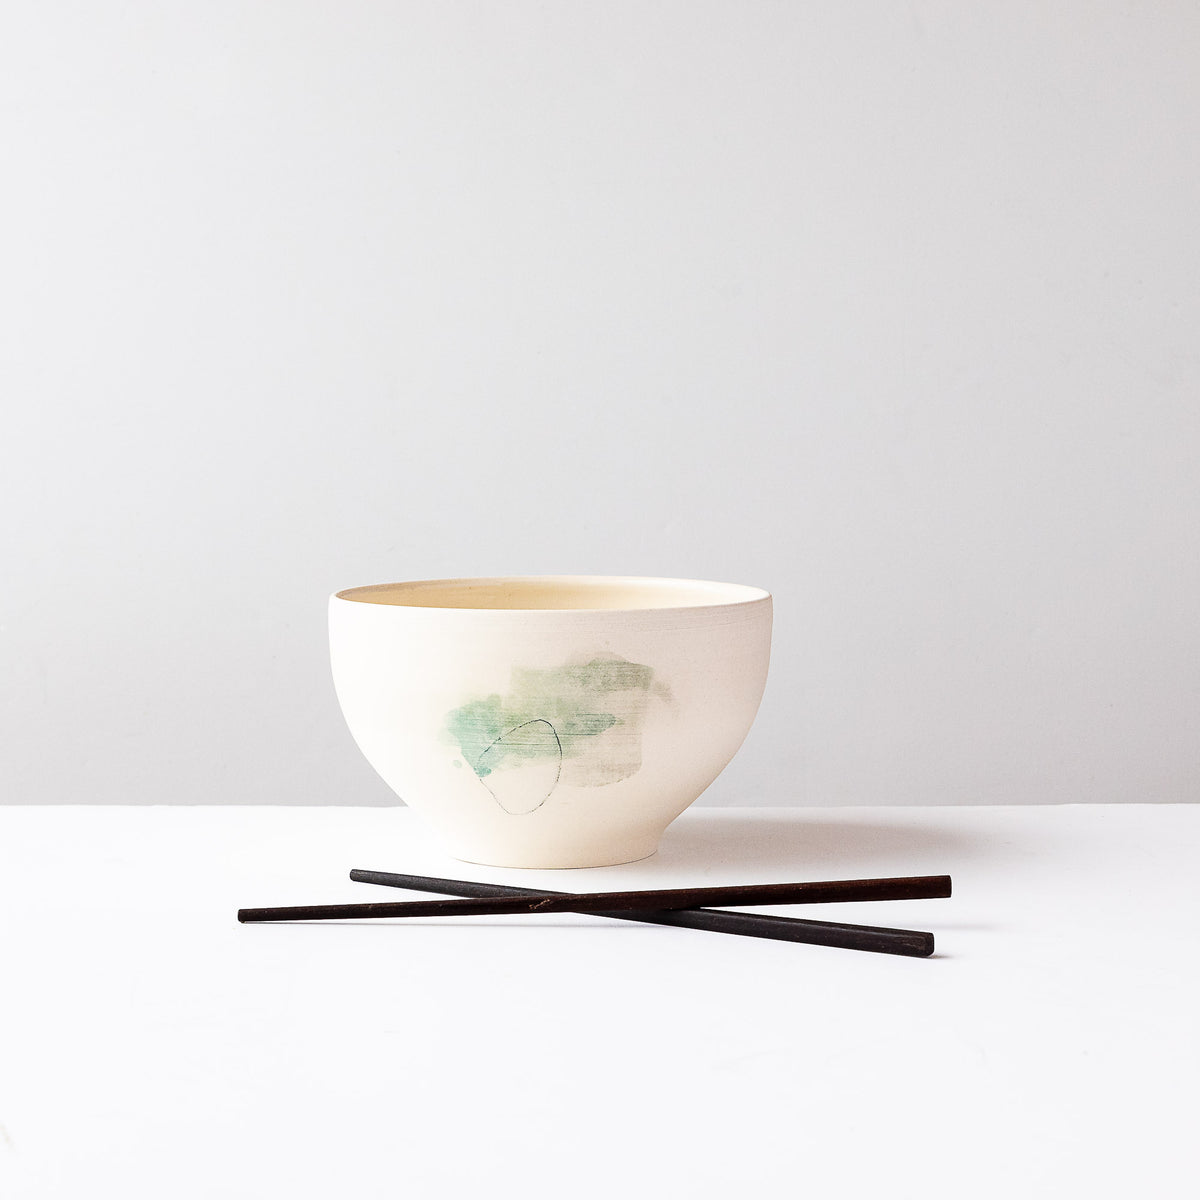 Green Pattern - Large Hand Painted White Porcelain Bowl Shown with Shop Sticks - Sold by Chic & Basta